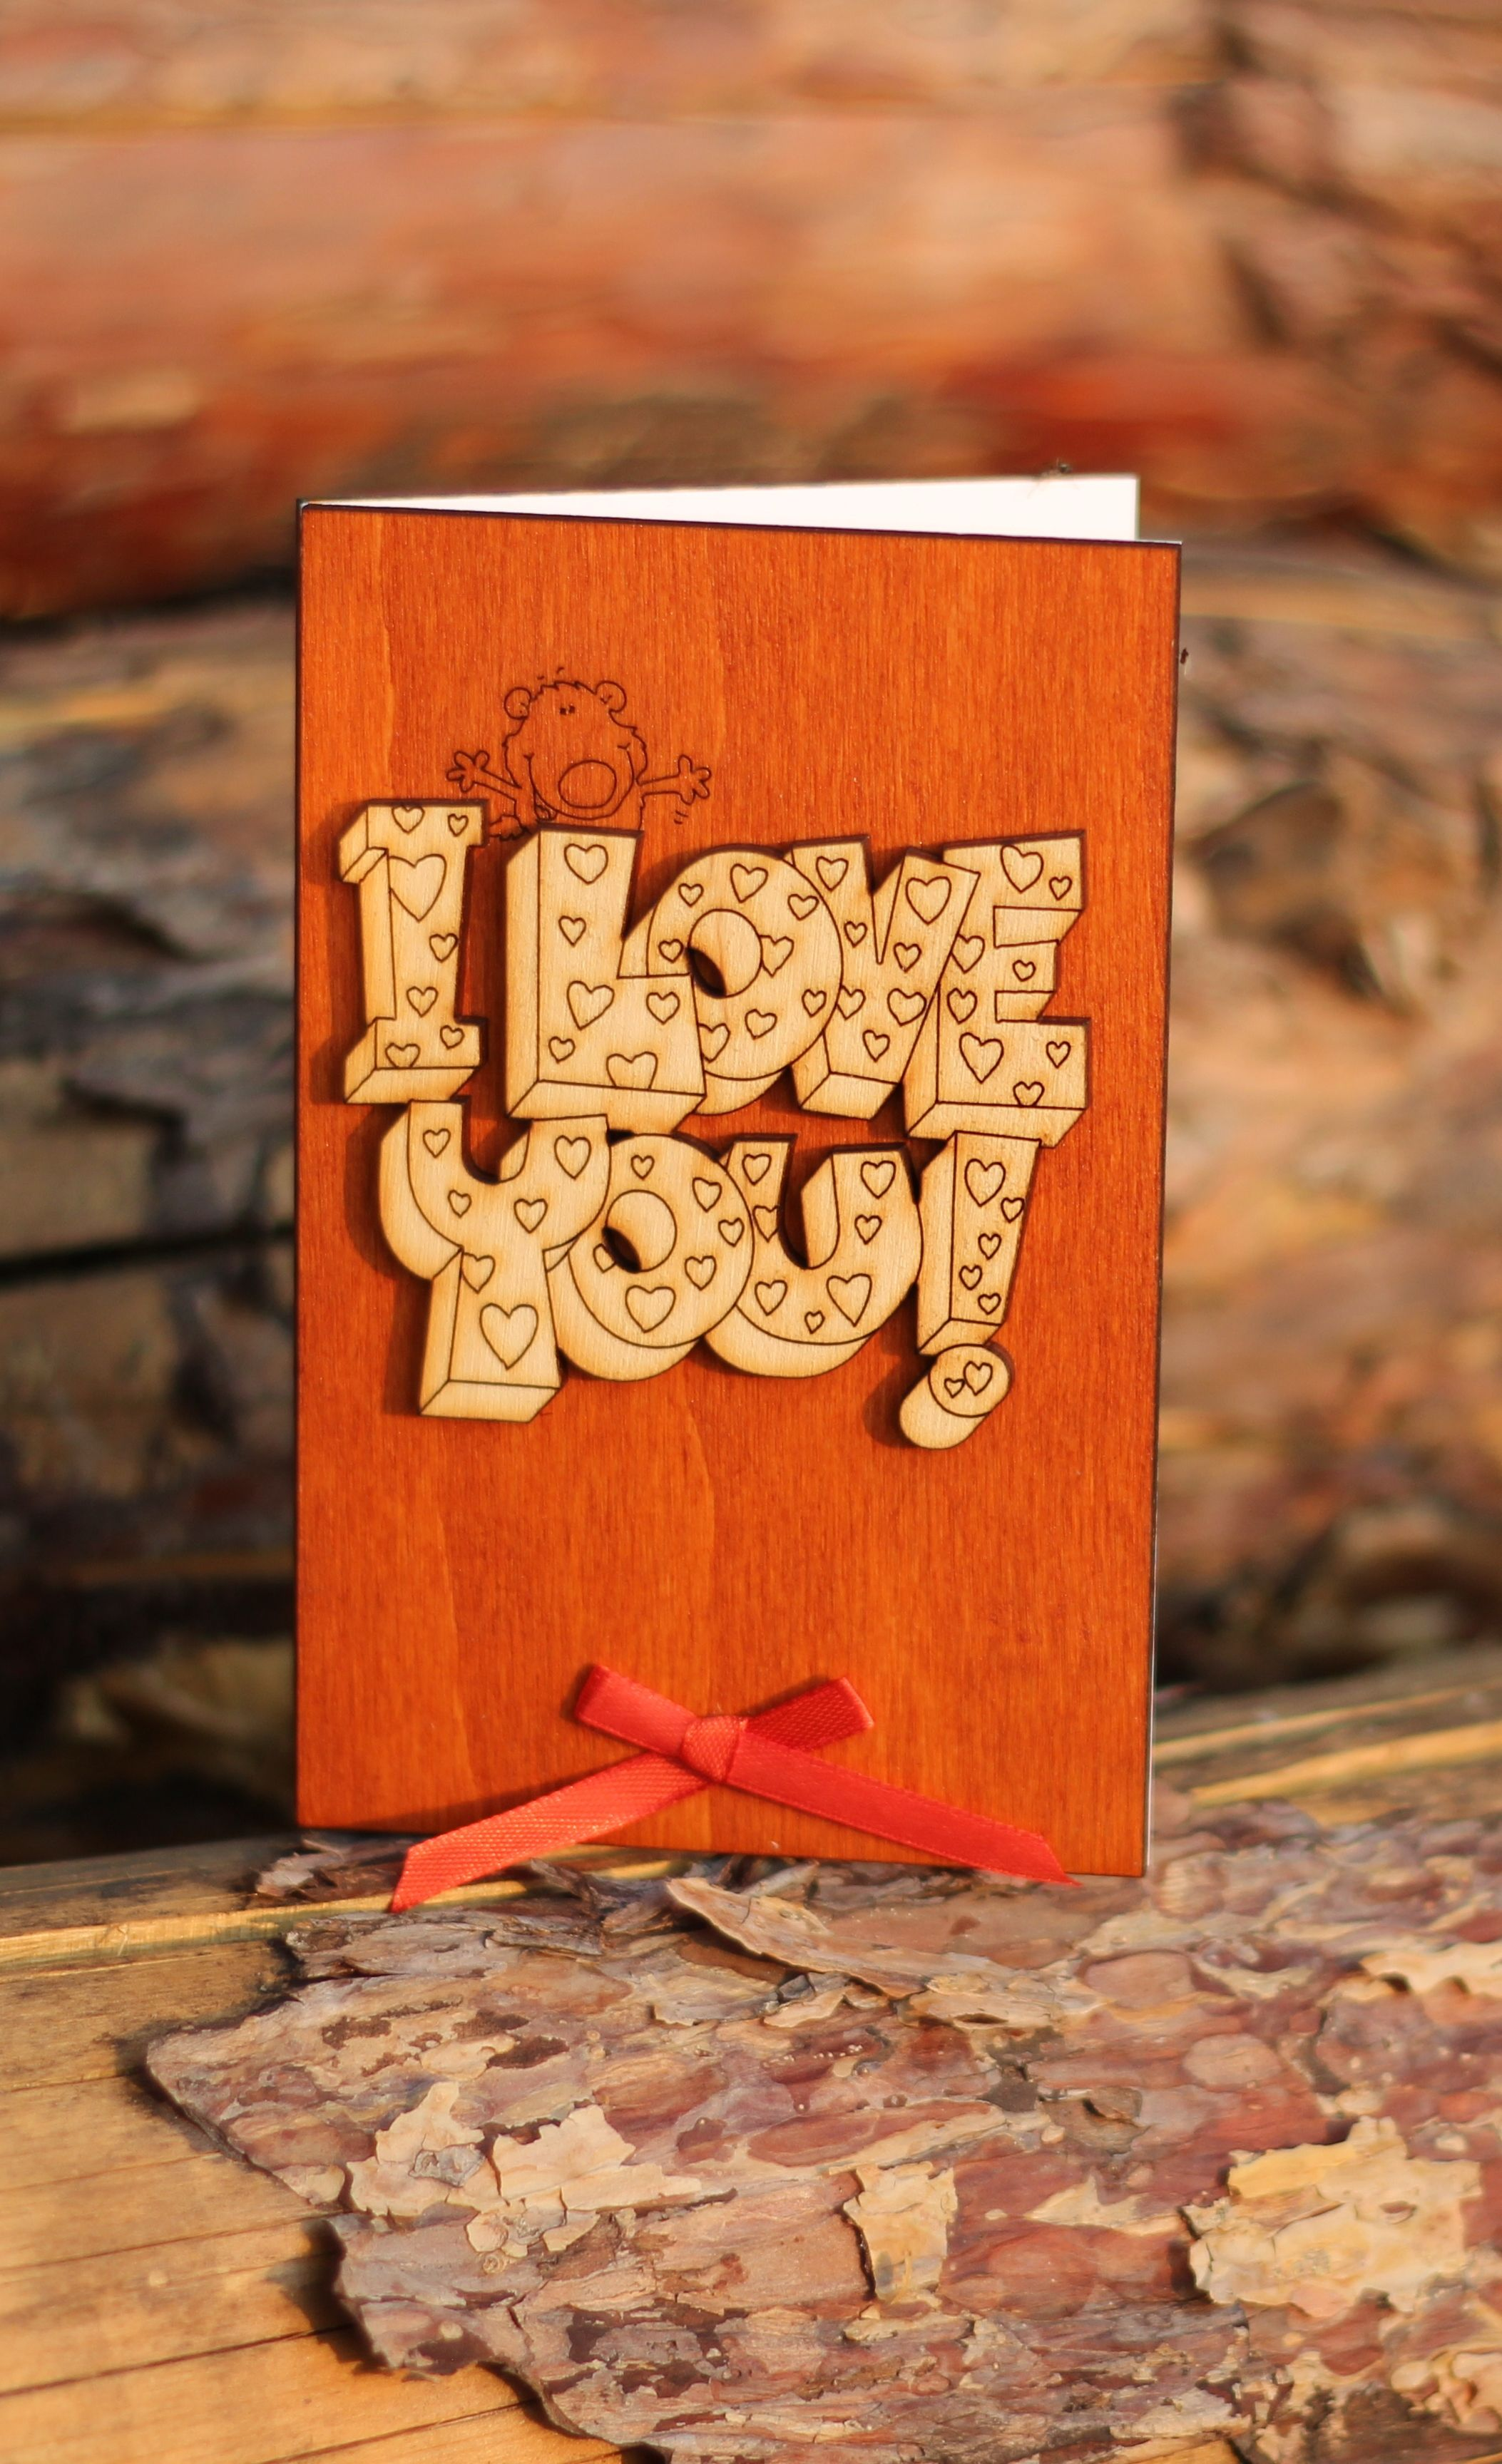 I love you card funny romantic wood gift for valentine day